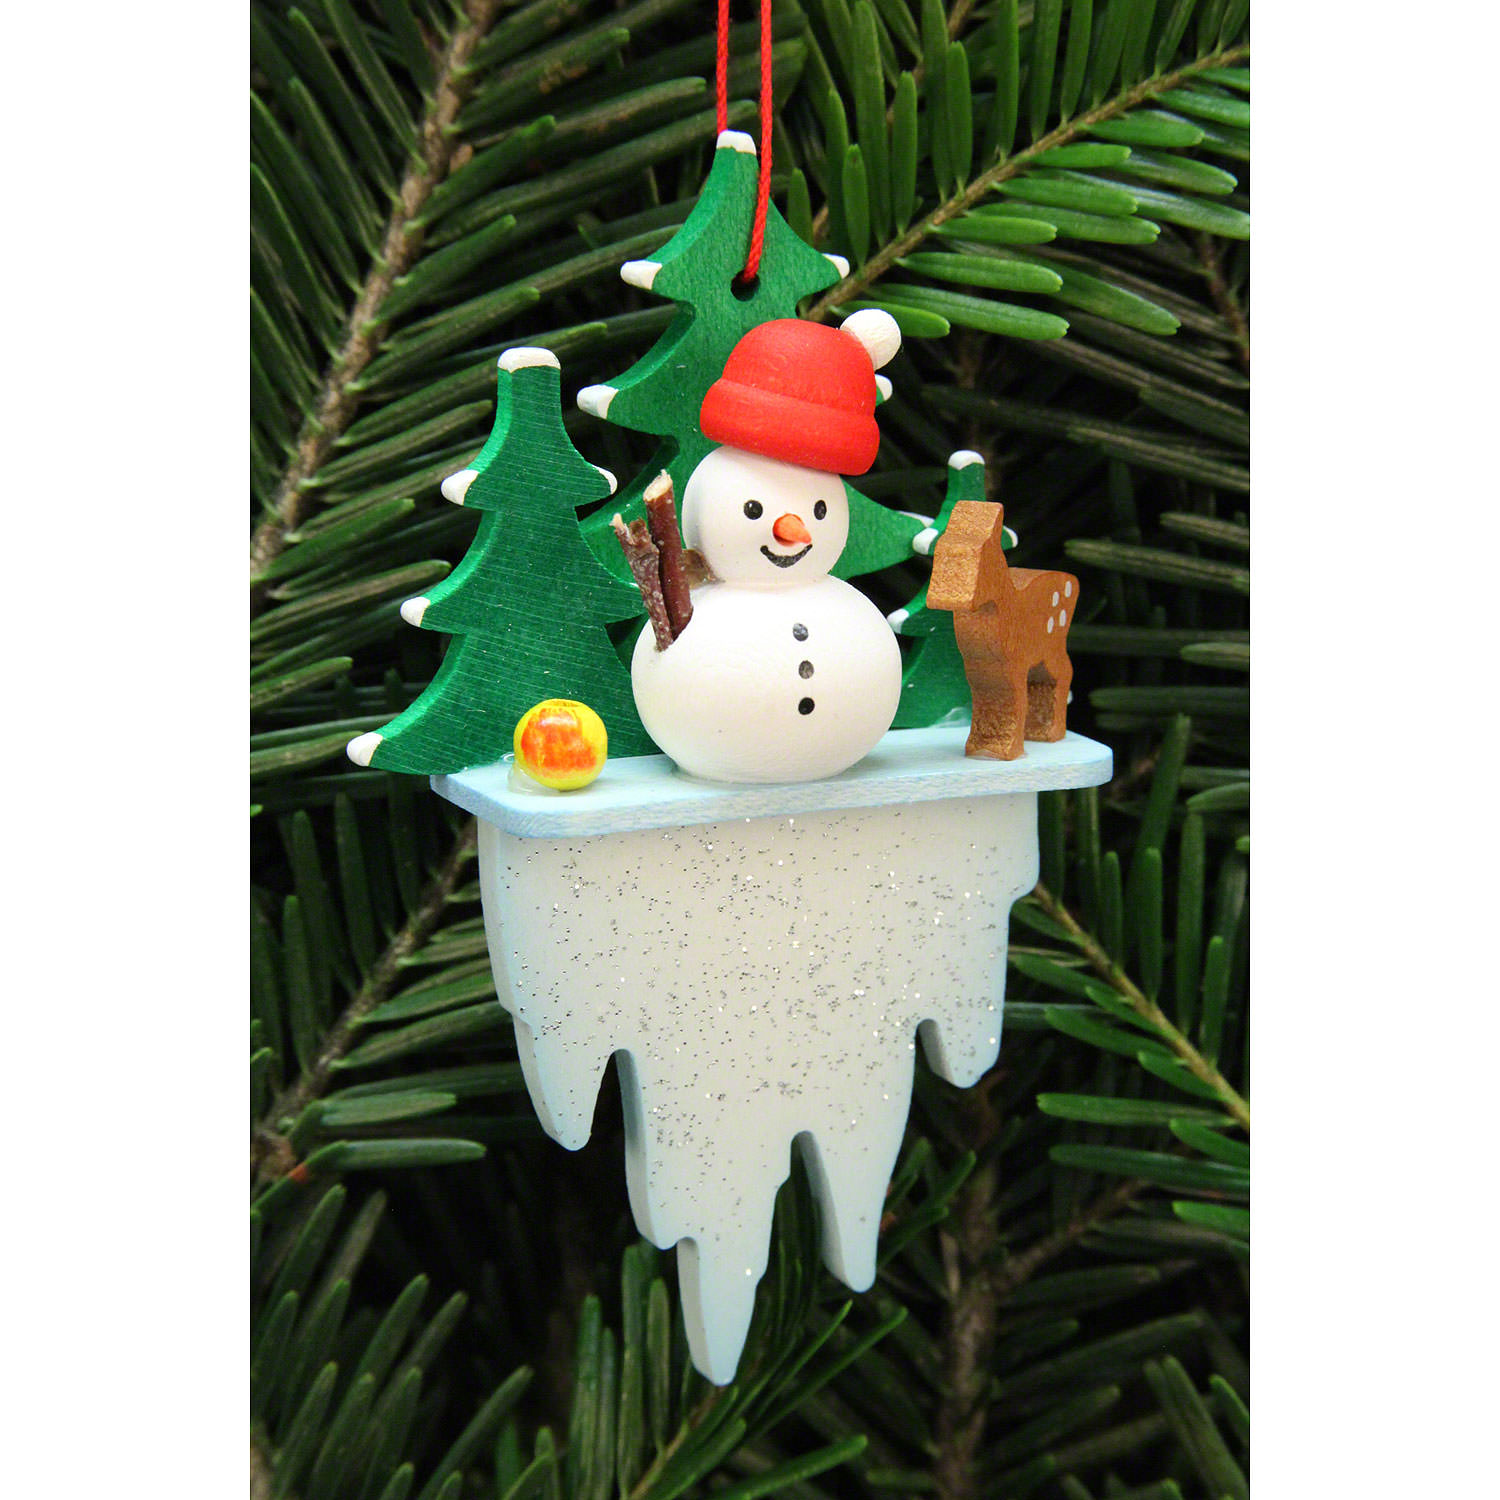 Tree Ornament Snowman On Icicle 5 5 8 8 Cm 2 2 3 4in By Christian Ulbricht